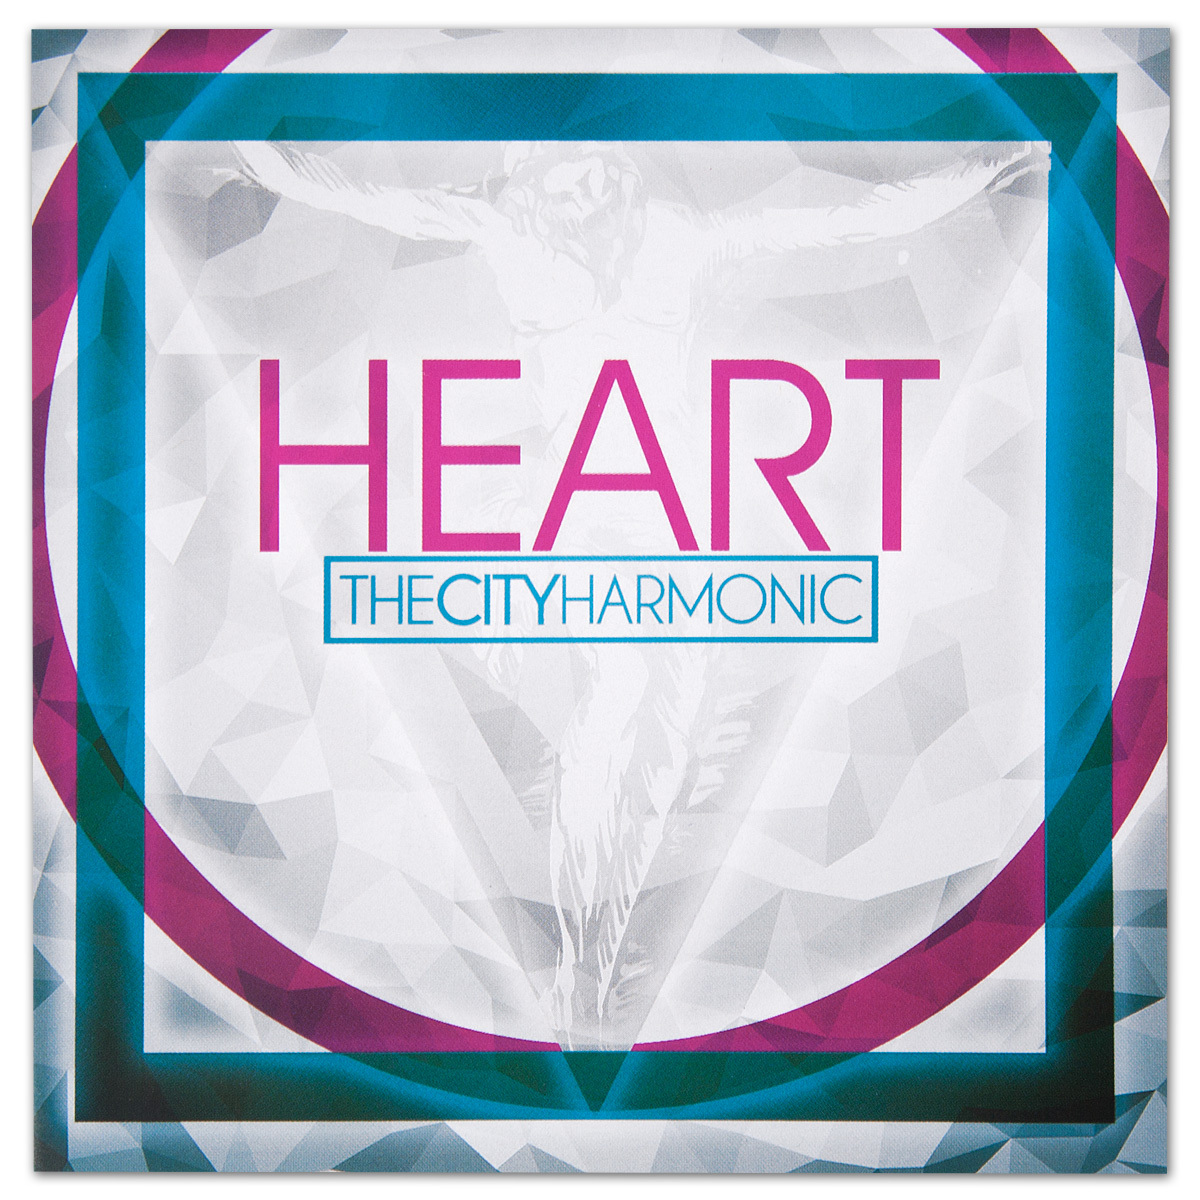 The City Harmonic: Heart CD